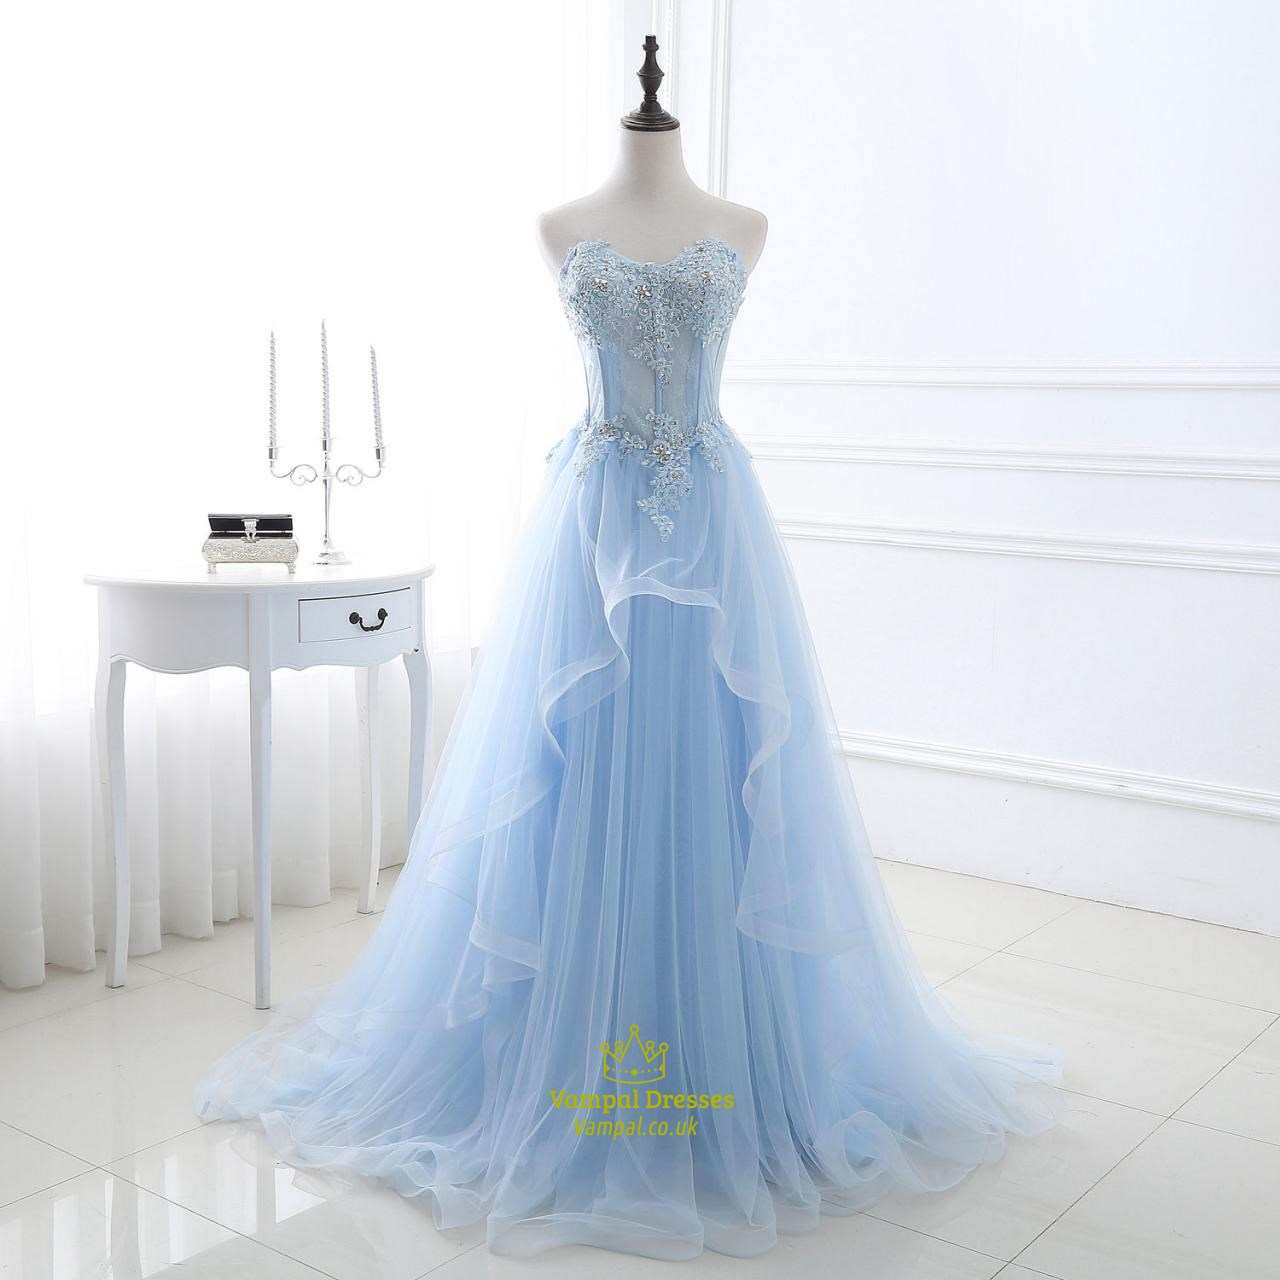 light blue strapless lace applique sequin embellished tulle ball gown vampal dresses. Black Bedroom Furniture Sets. Home Design Ideas